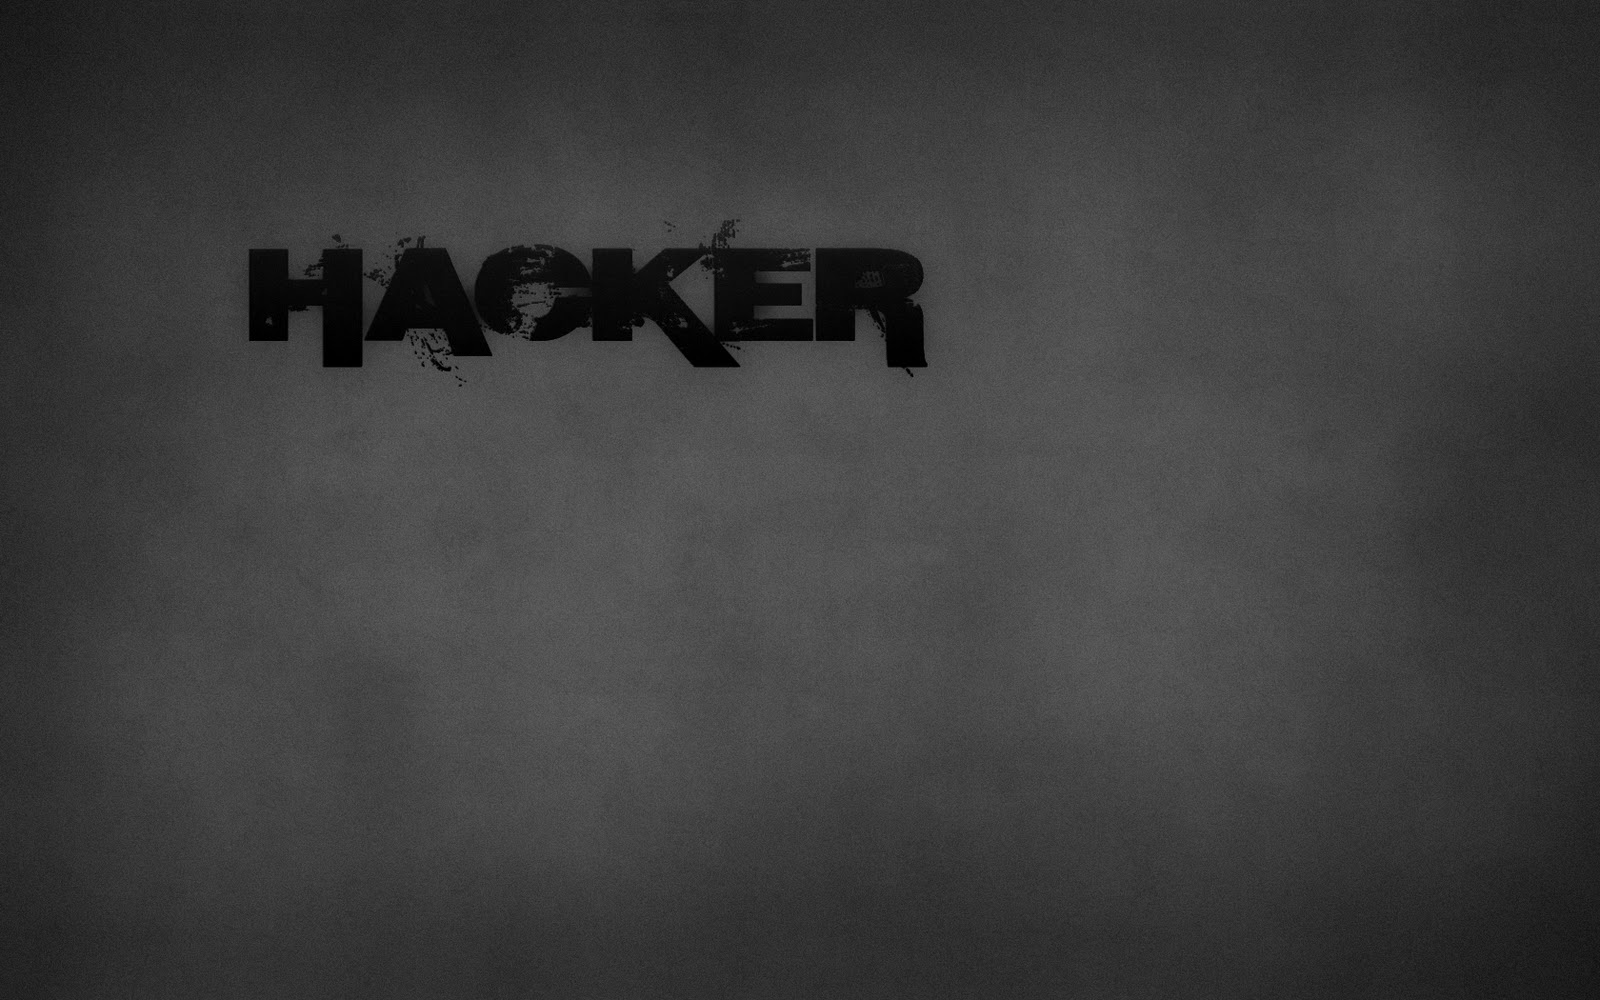 http://3.bp.blogspot.com/-_Nz5ZENUy_M/TtdSLGkytoI/AAAAAAAAAMg/BdWUtX7_OvA/s1600/security_hacker_wallpaper_3_by_securityhacker-d31wb08.jpg